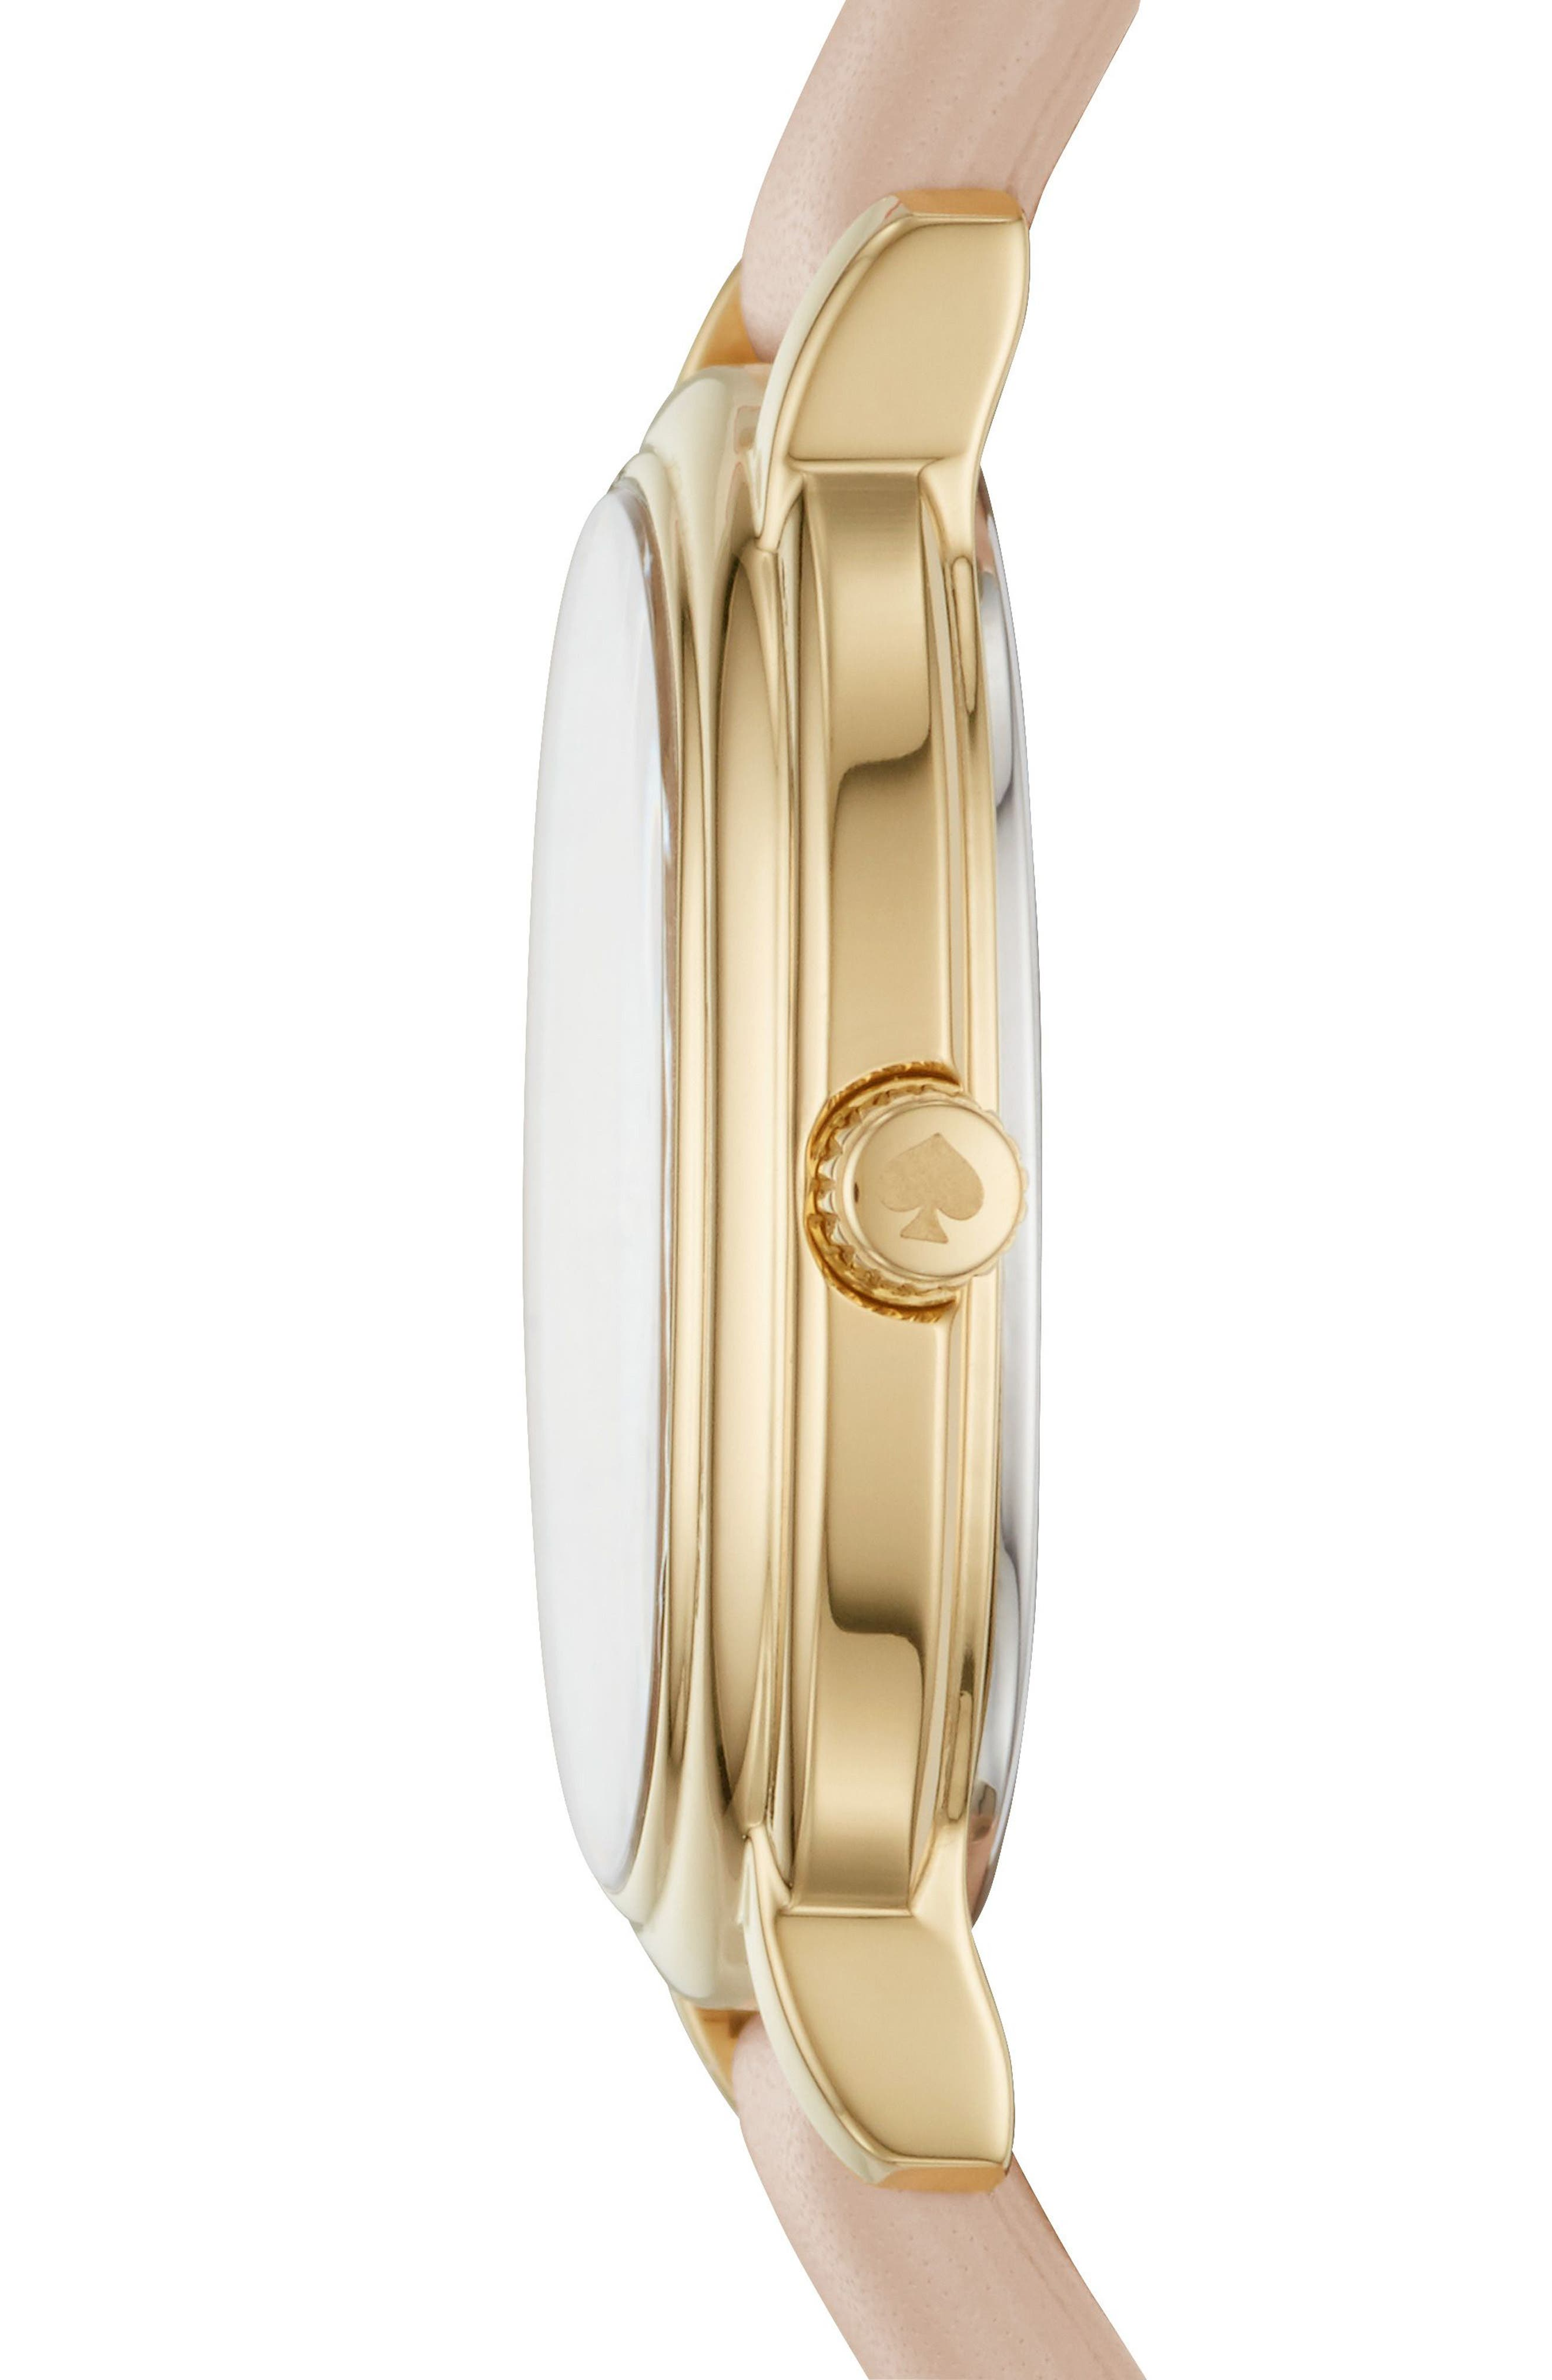 staten leather strap watch, 25mm,                             Alternate thumbnail 2, color,                             Nude/ White/ Gold